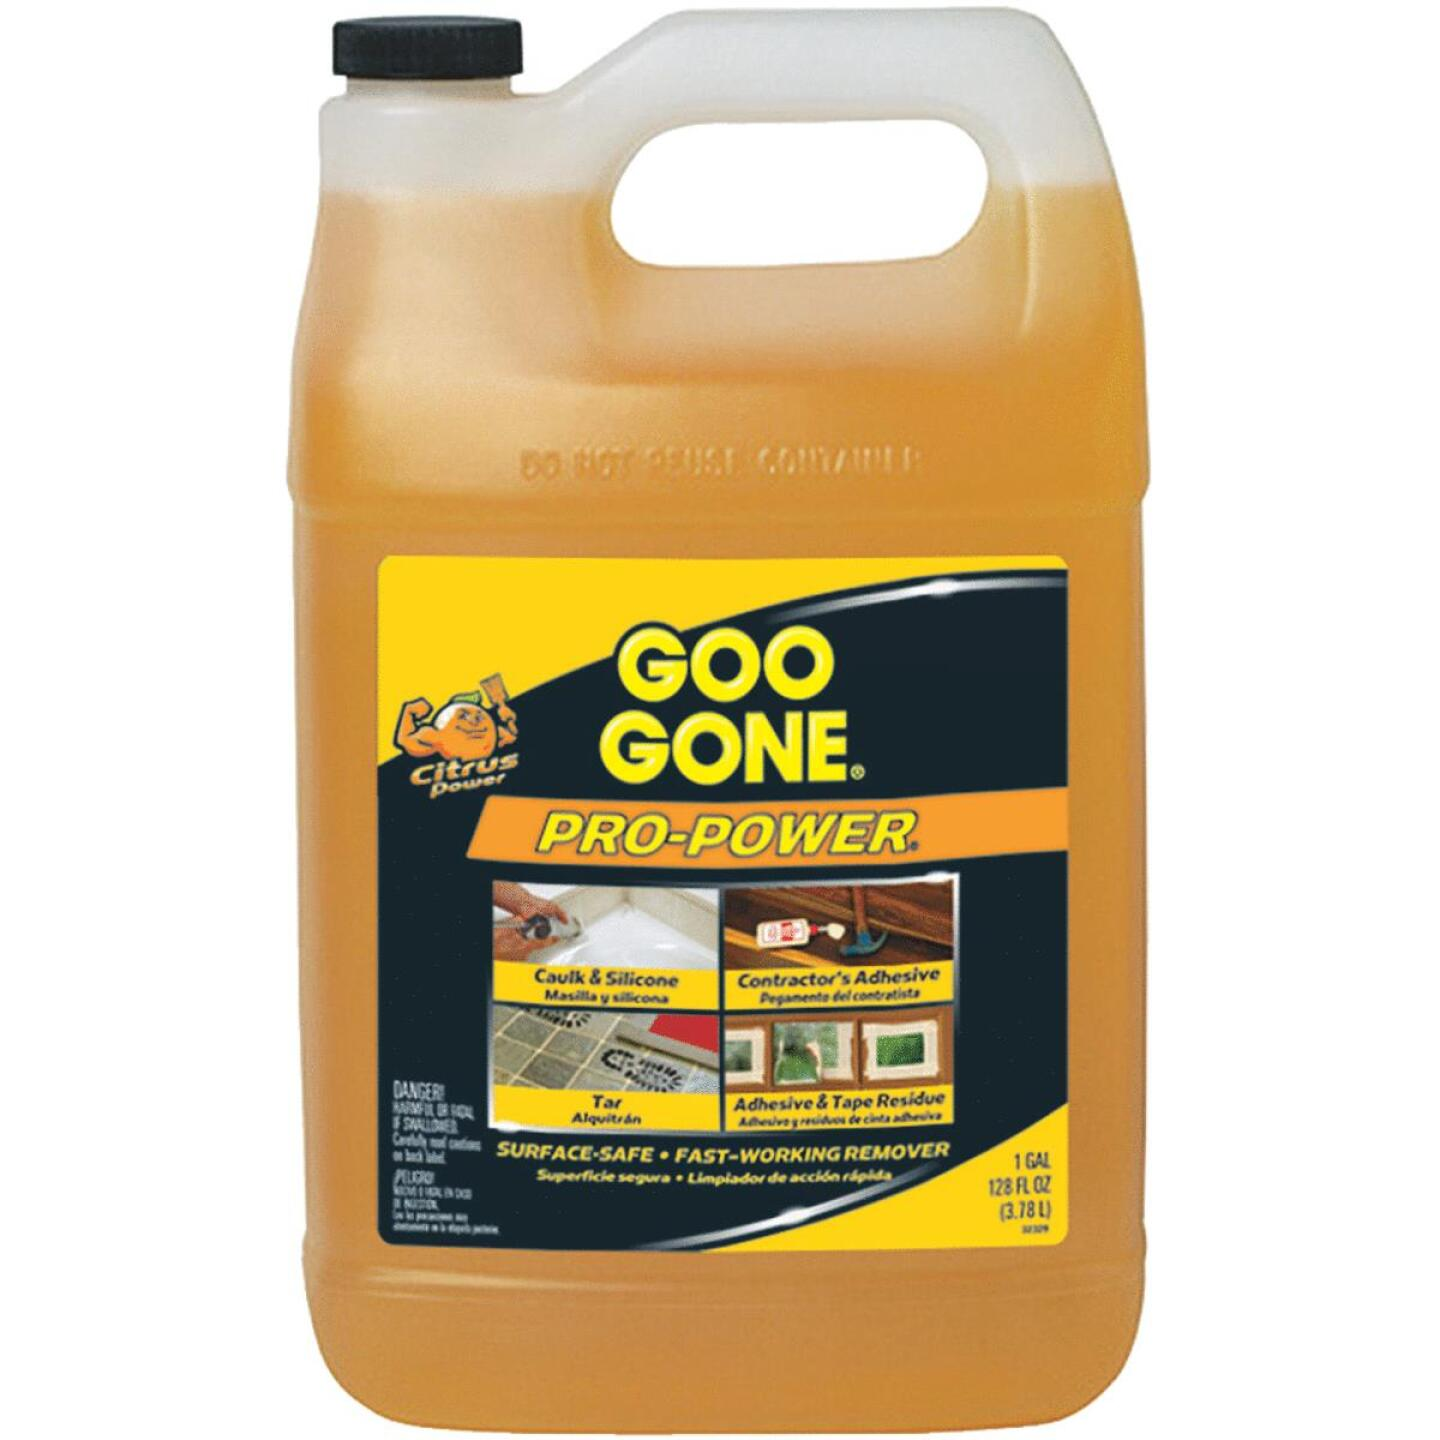 Goo Gone 1 Gal. Pro-Power Adhesive Remover Image 110